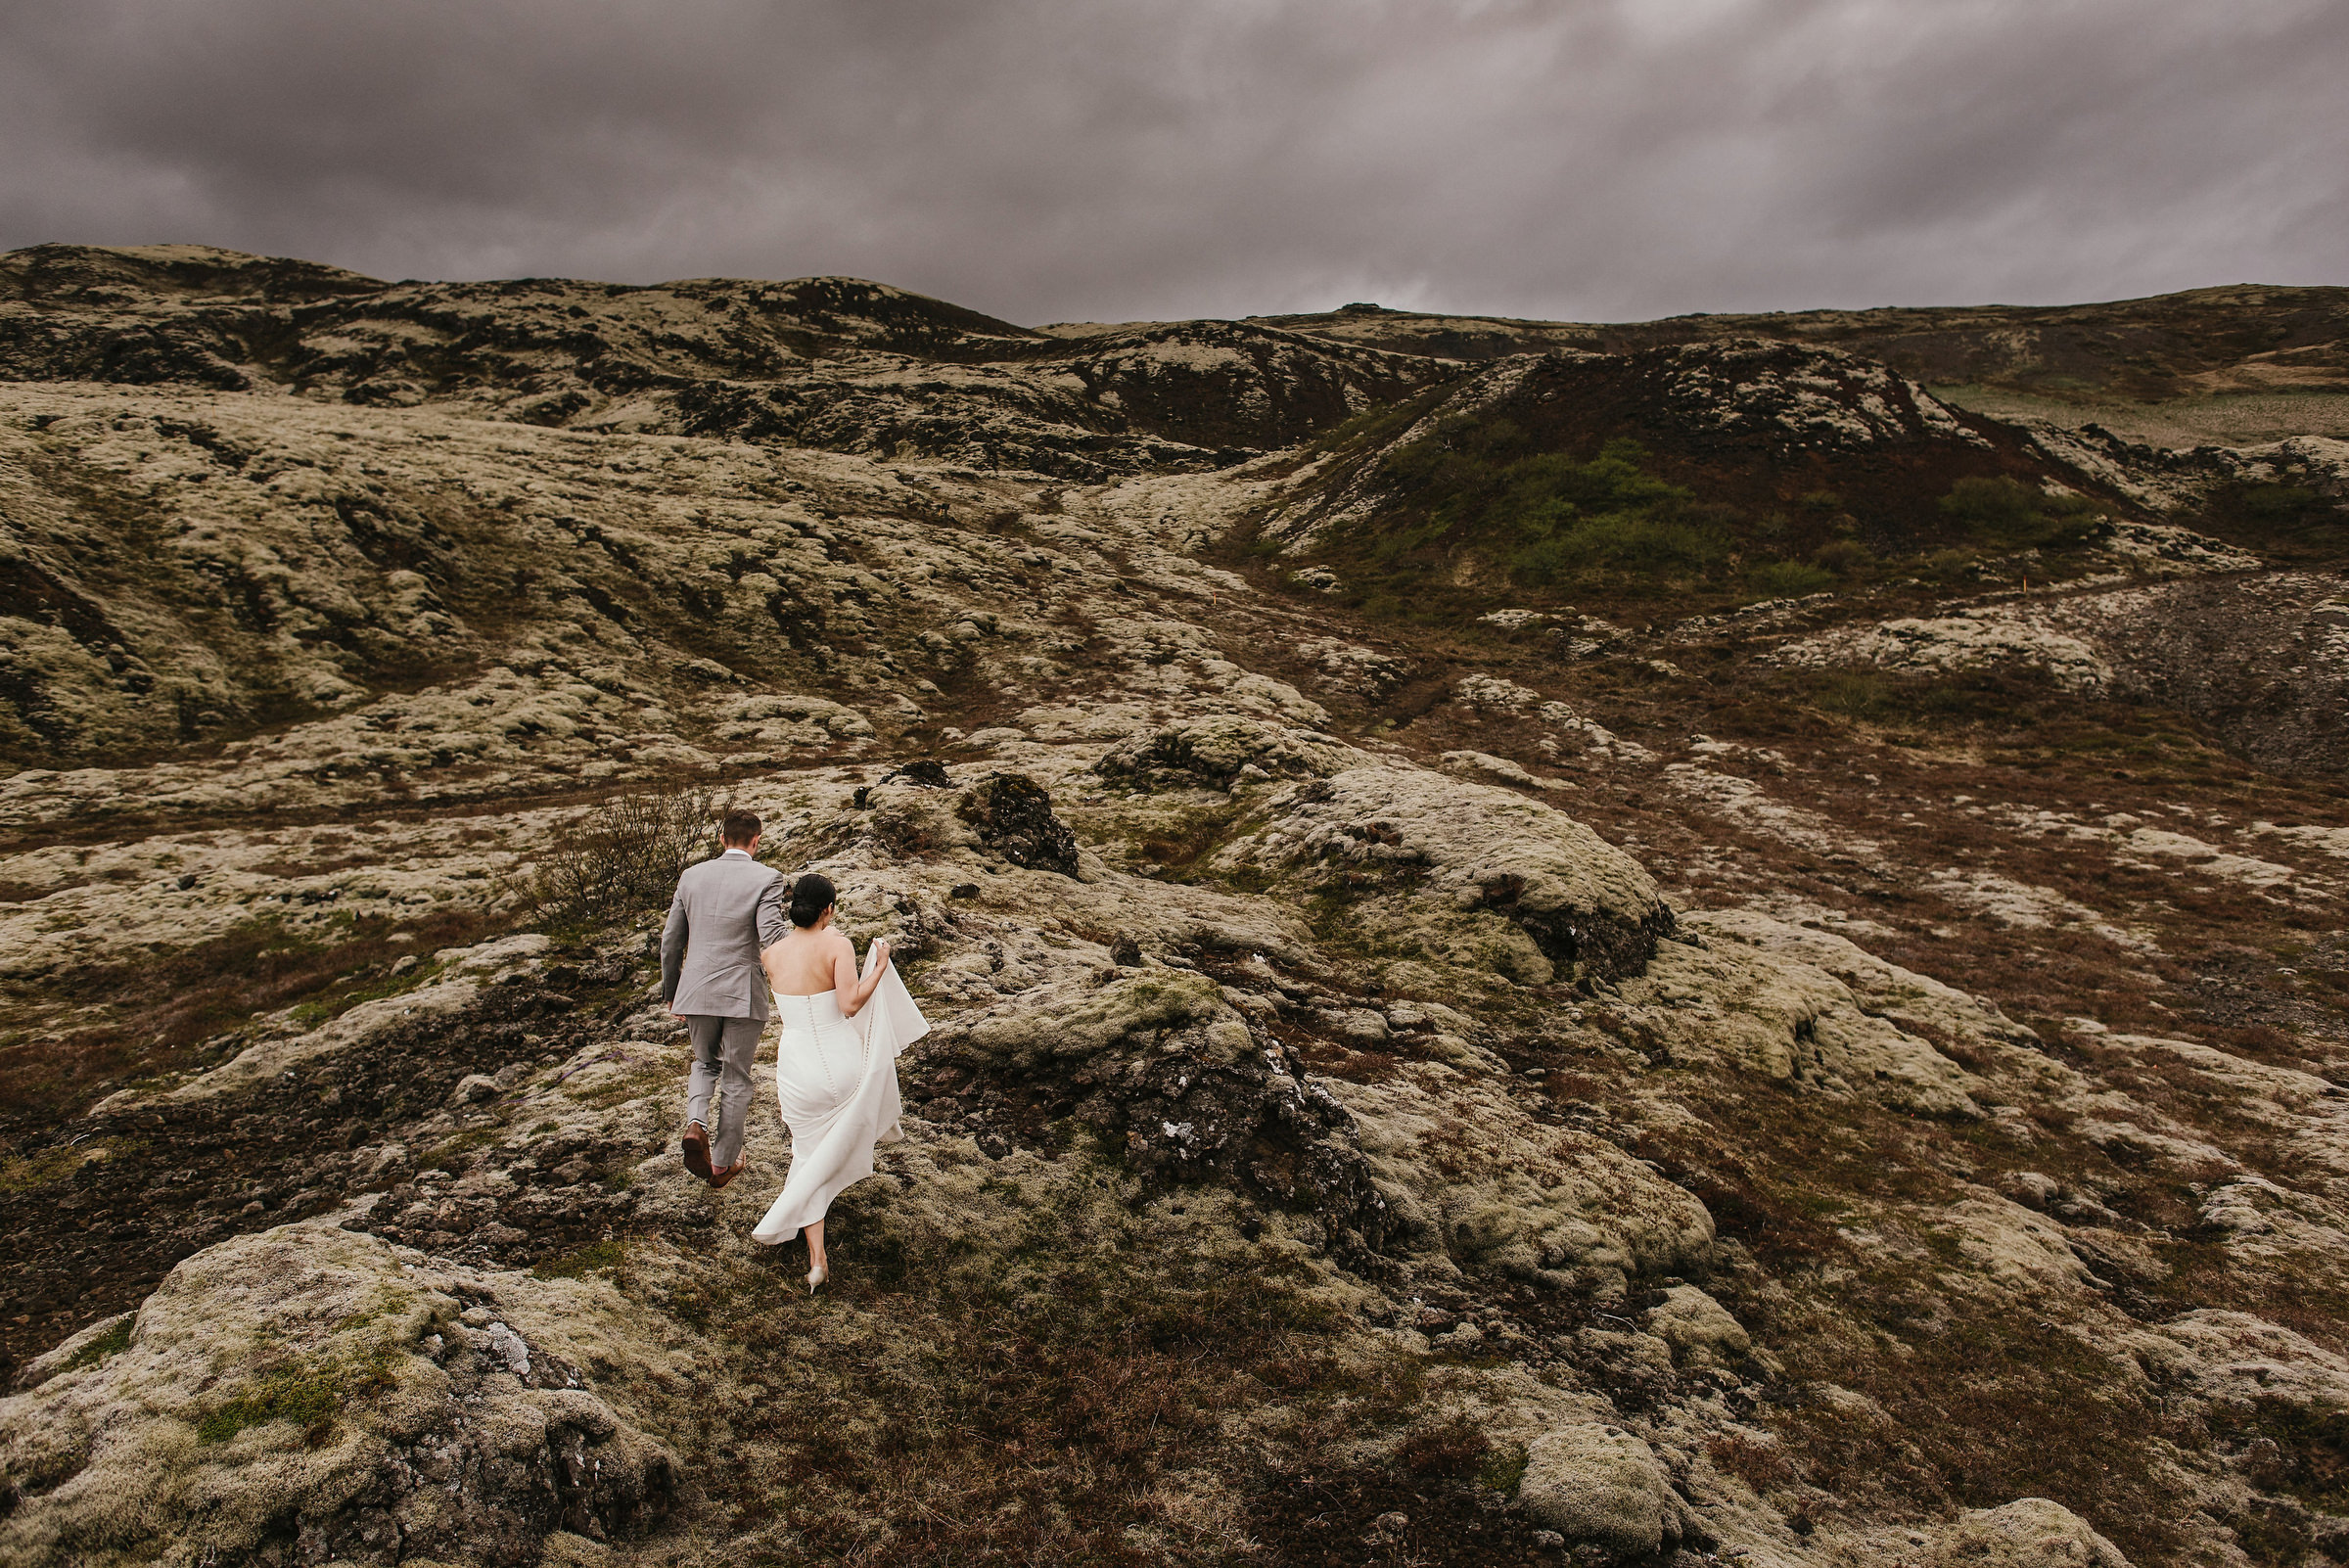 Bride and groom in rocky landscape photo by Andy Gaines Photography